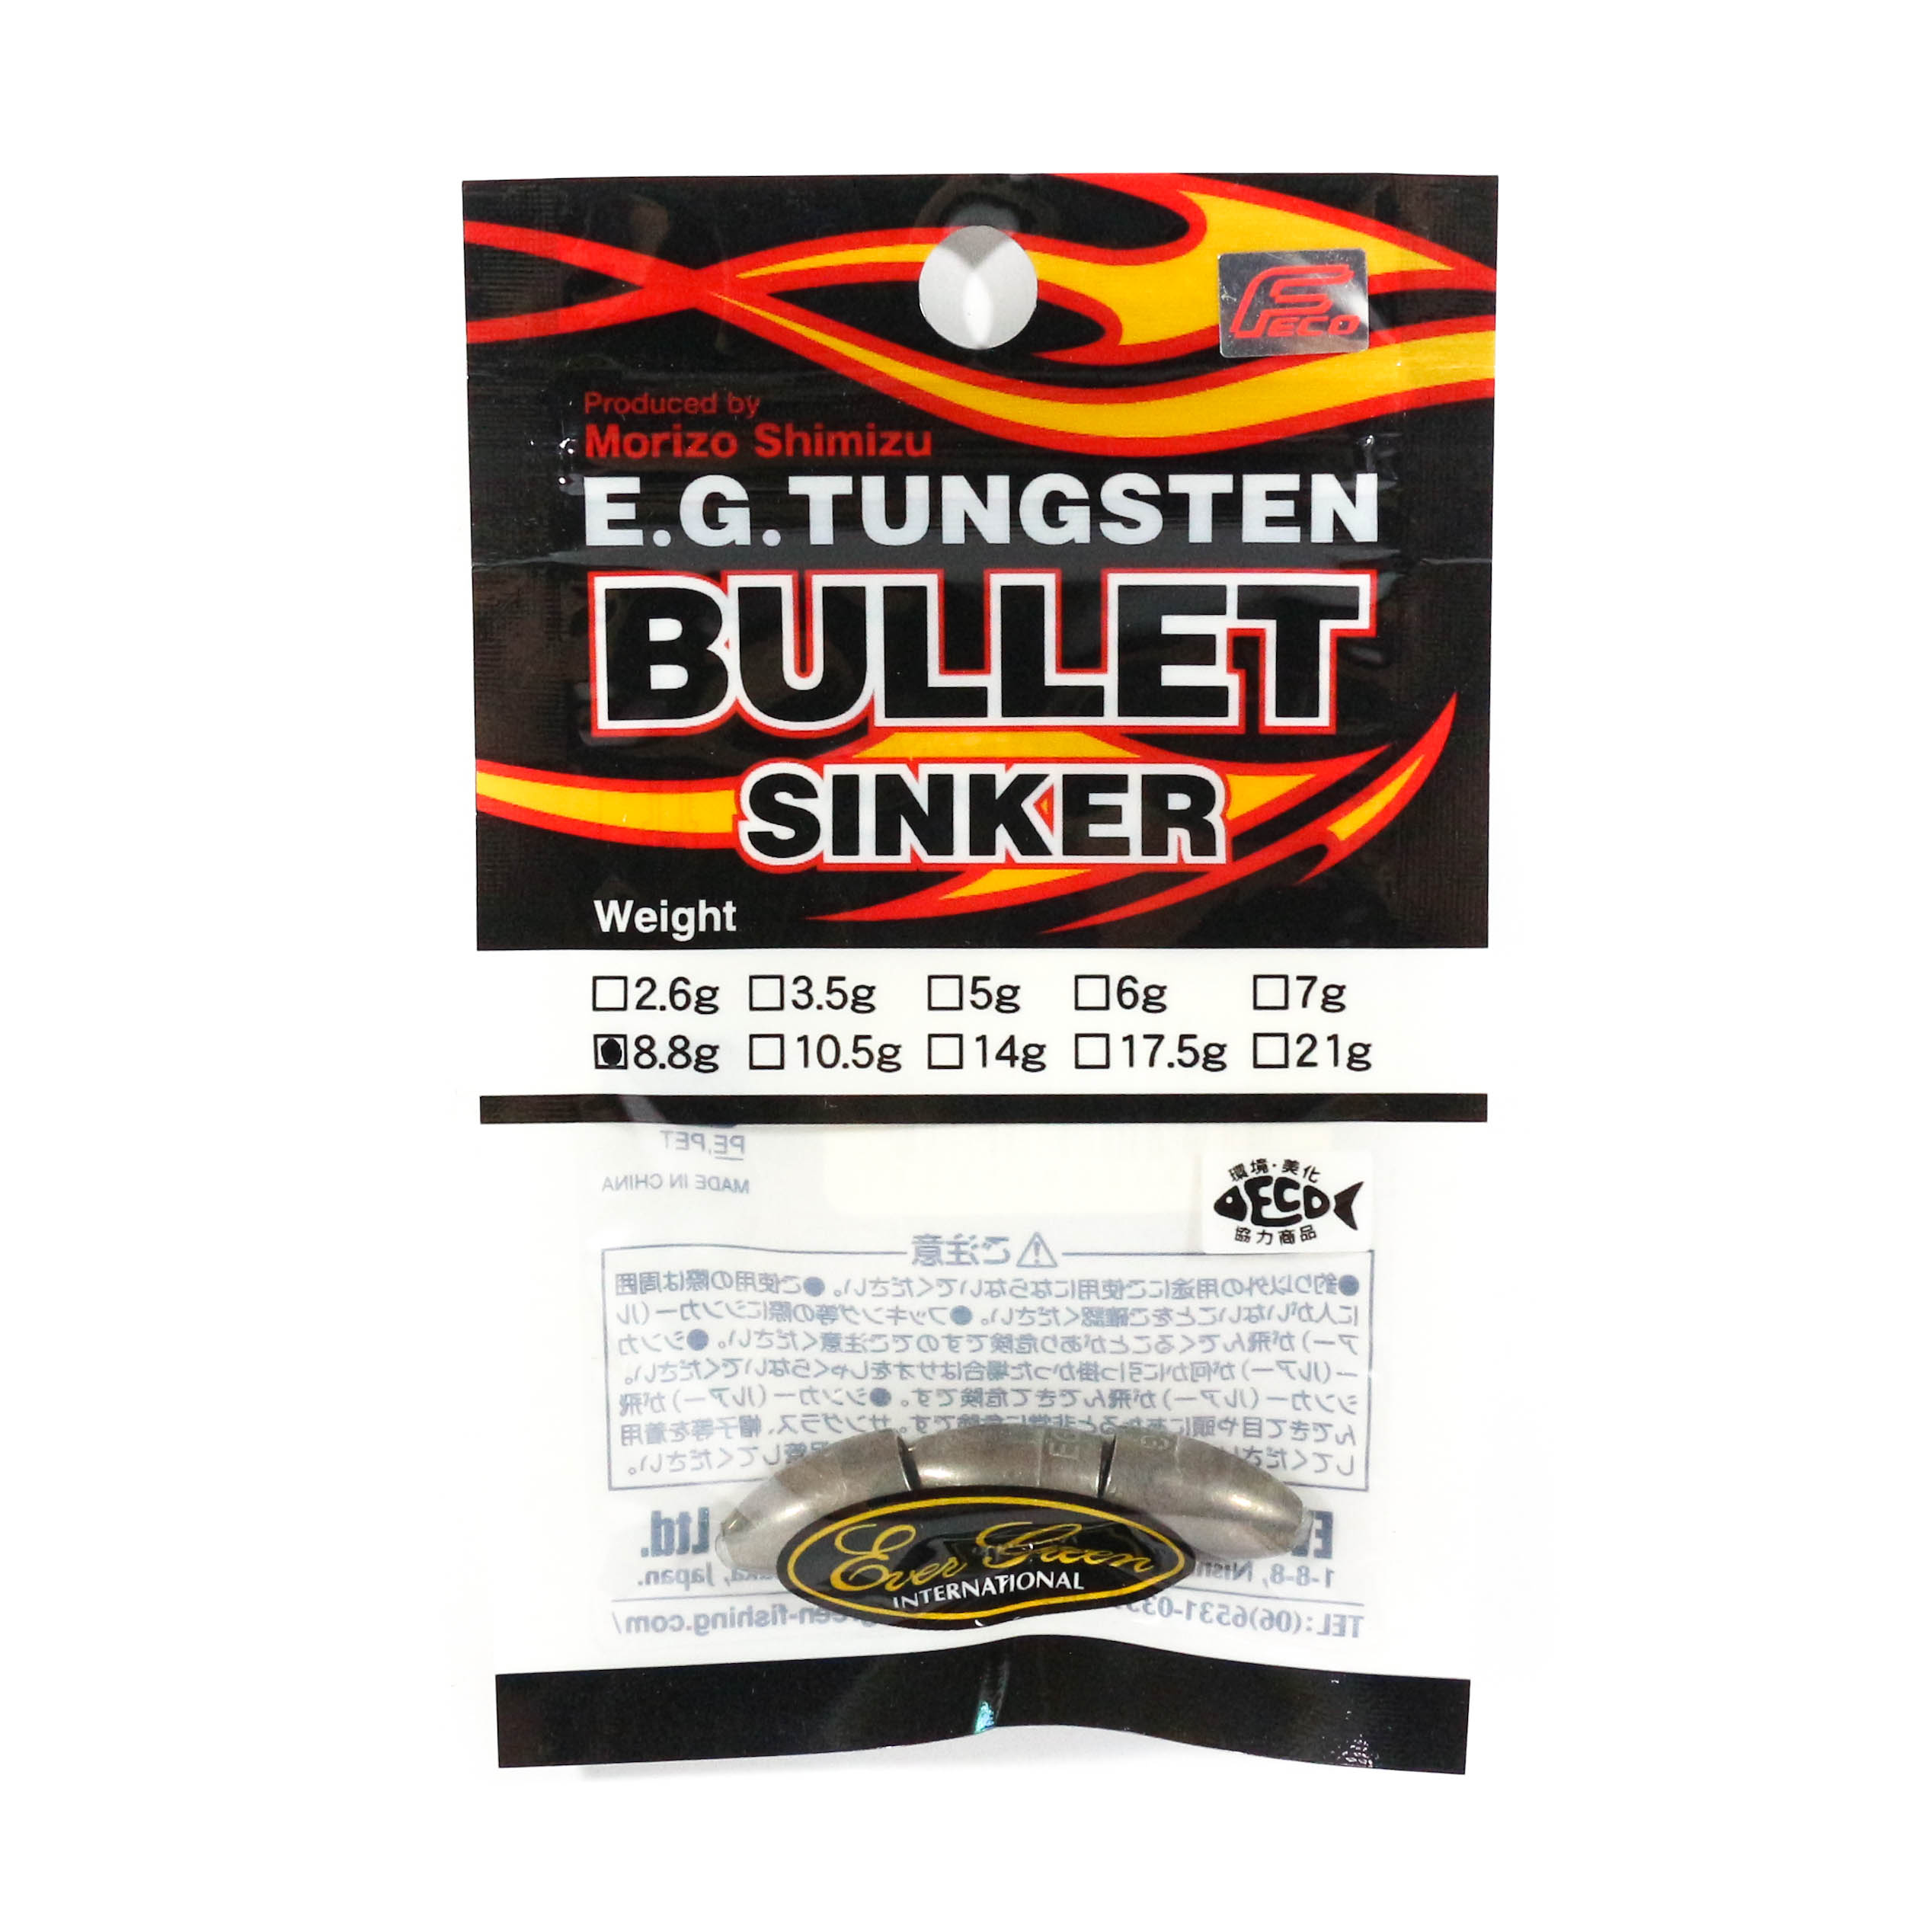 Evergreen Tungsten Bullet Sinker 5/16 oz (8.8 Grams) (1835)